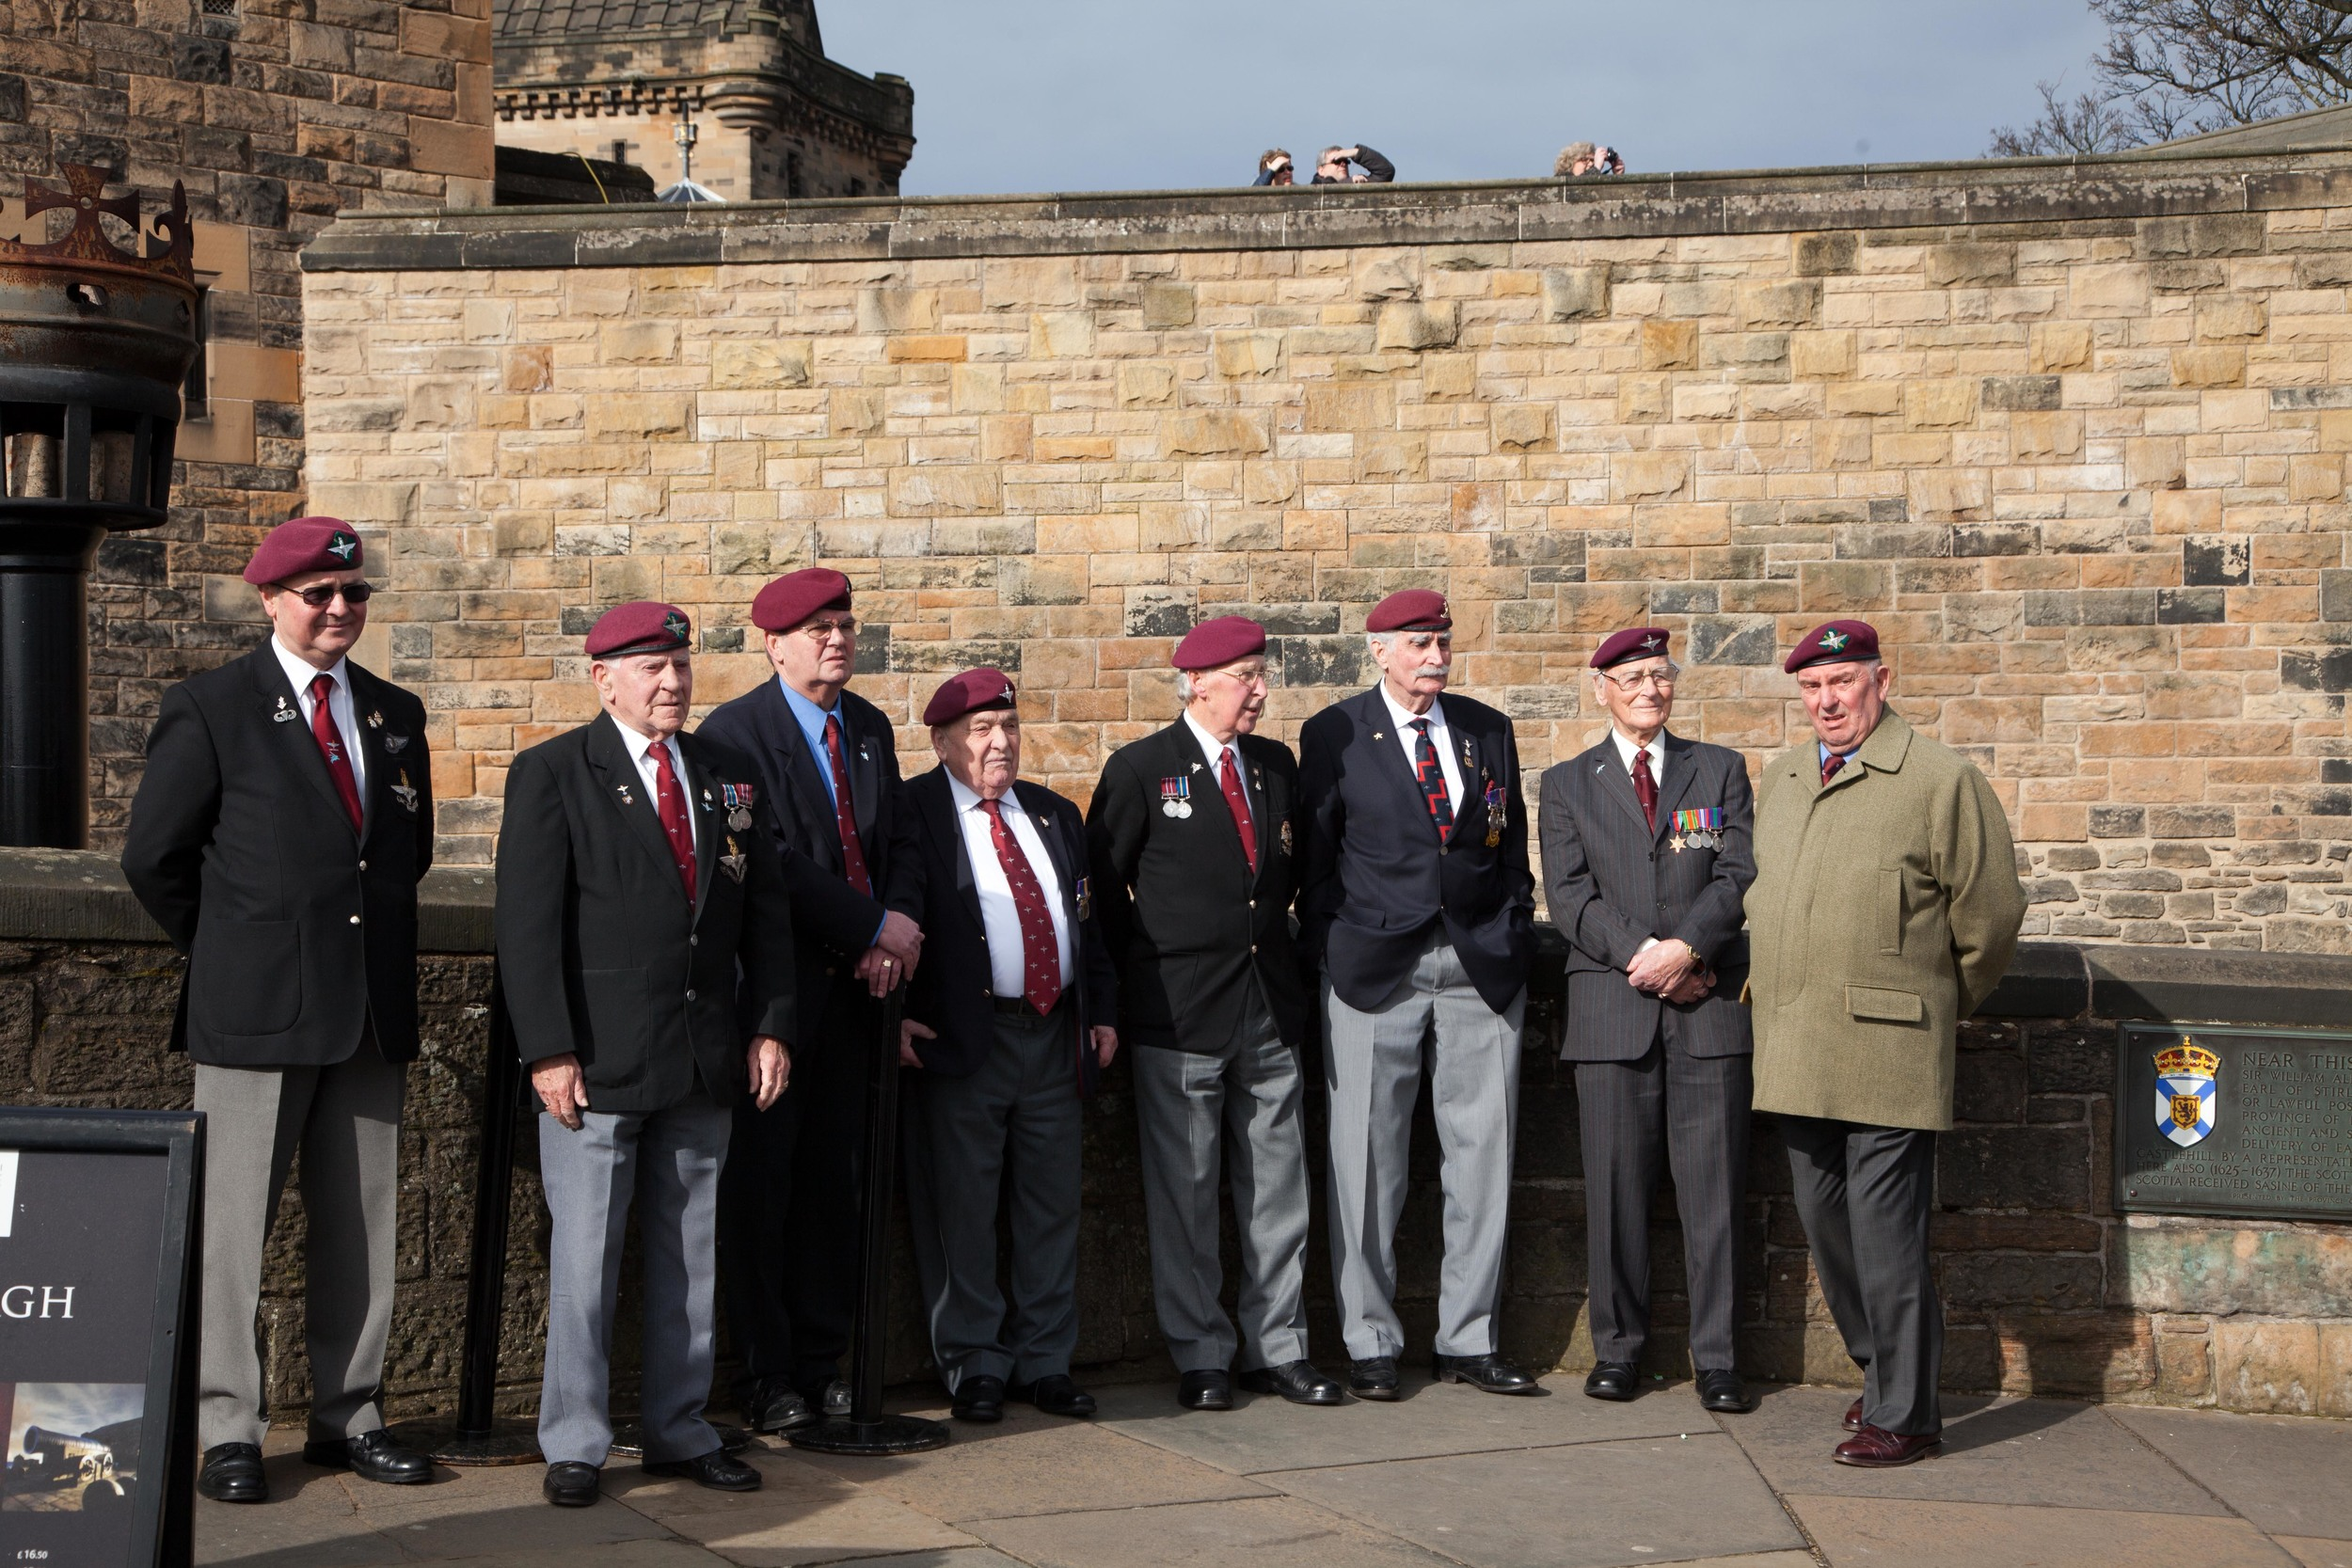 Some WWII veterans chillin in front of the Edinburgh Castle